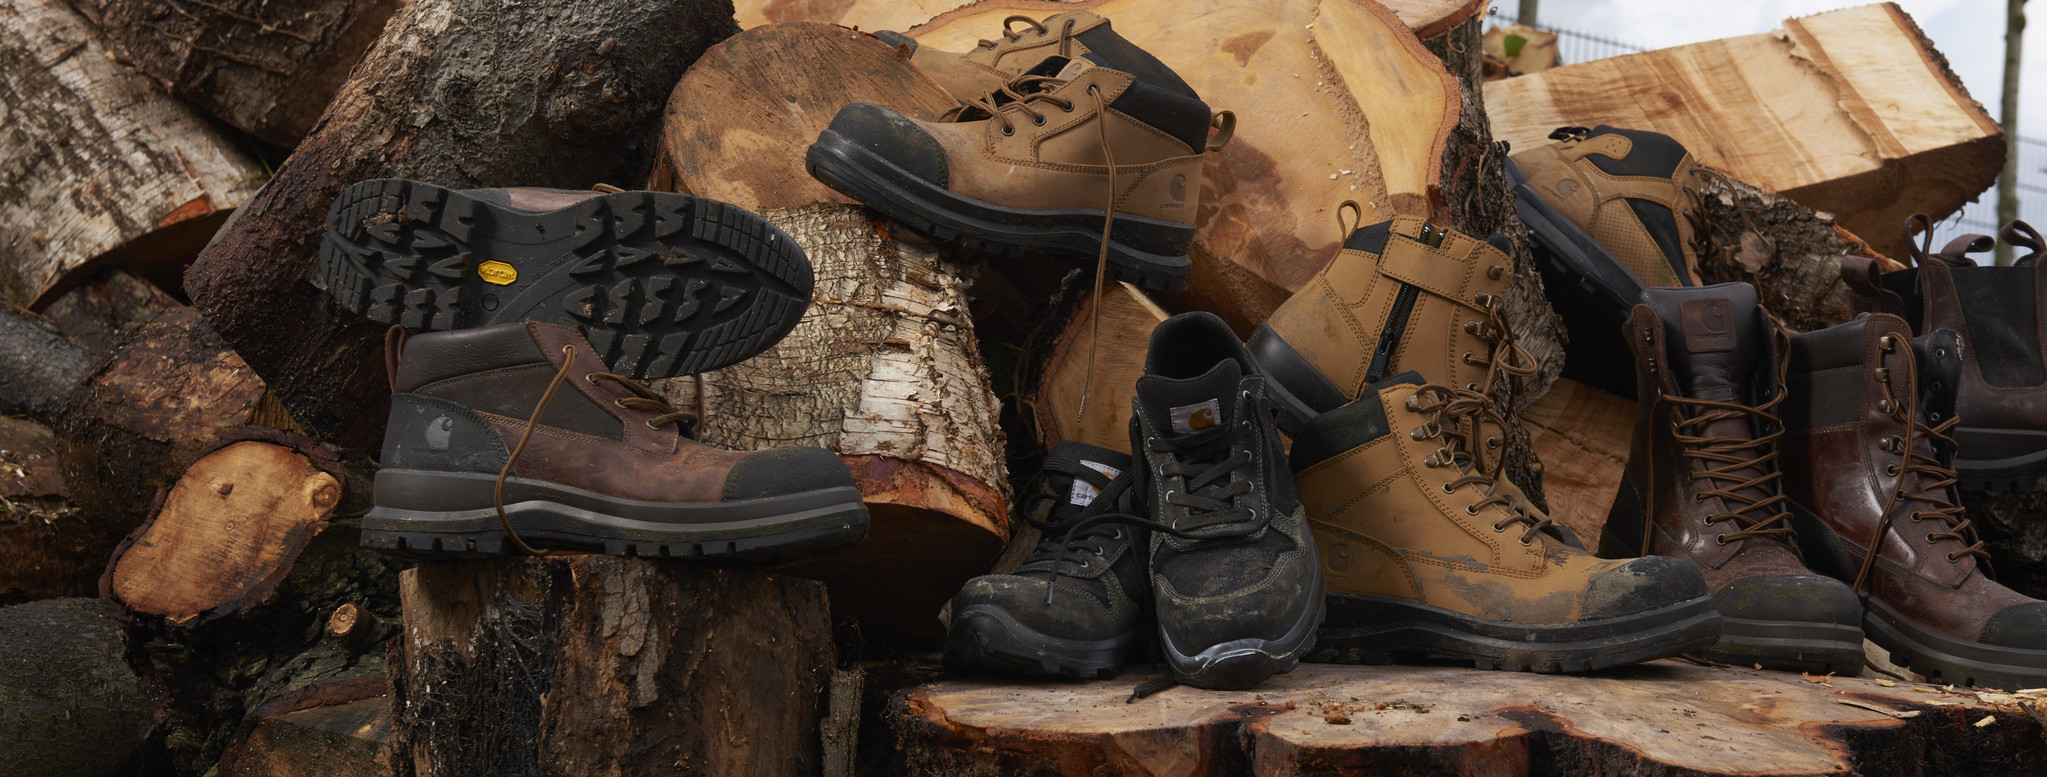 Carhartt Werkschoenen - To take down any workday